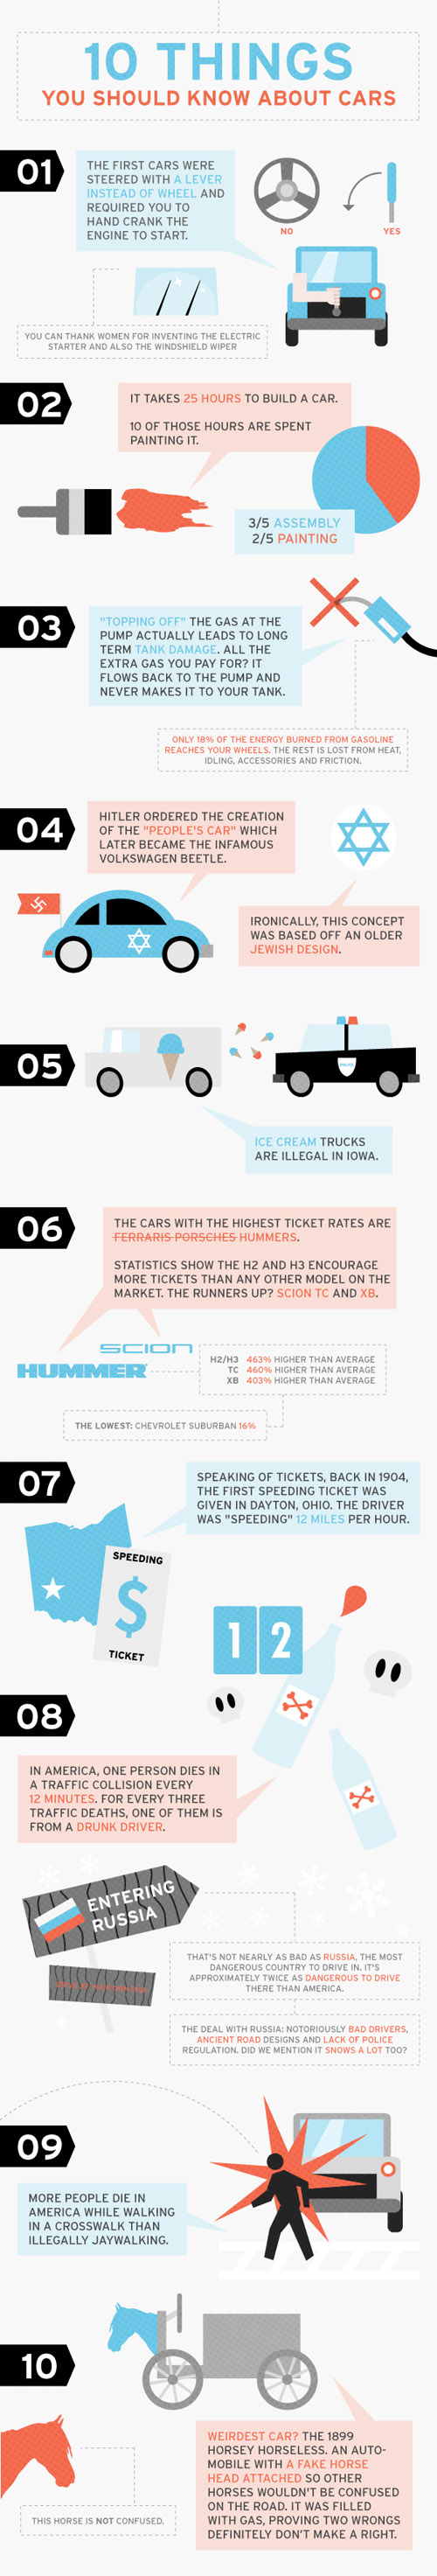 10thingsaboutcars